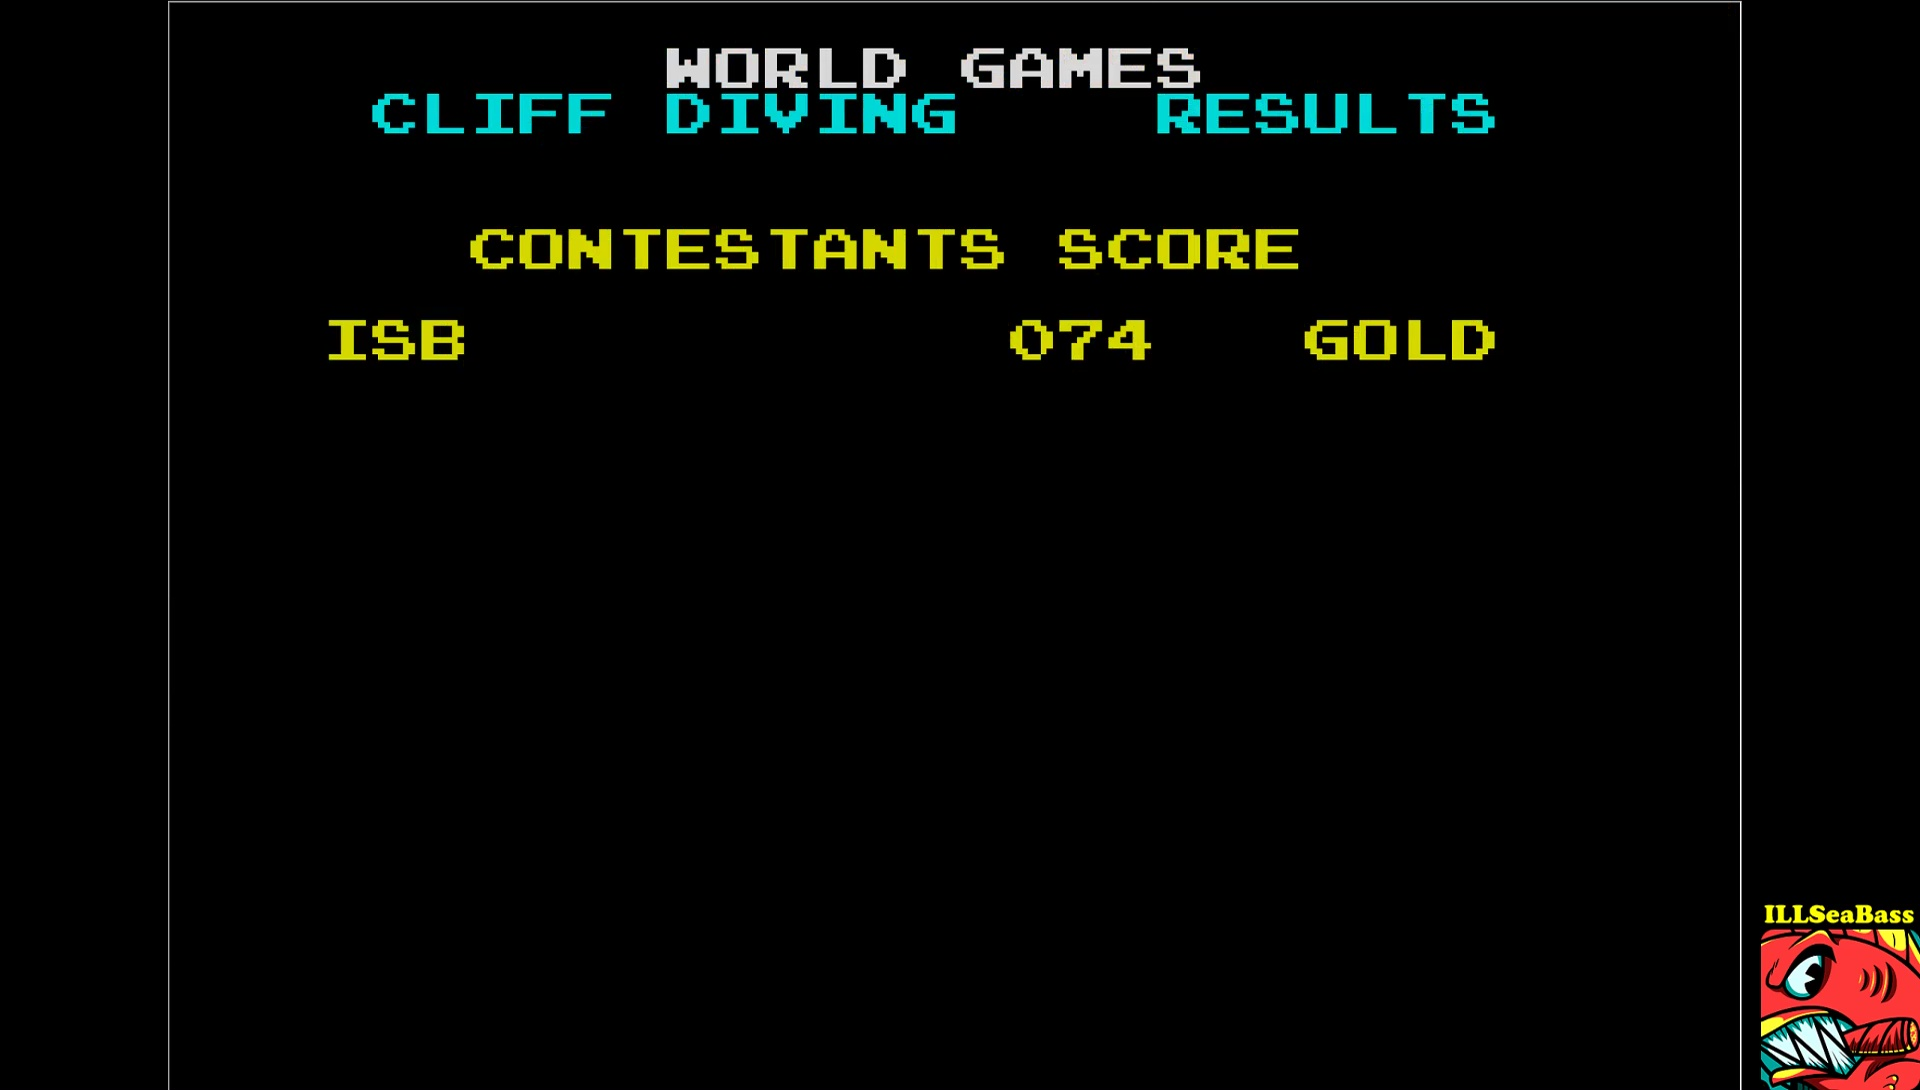 ILLSeaBass: World Games [Cliff Diving] (ZX Spectrum Emulated) 74 points on 2017-08-28 12:43:09